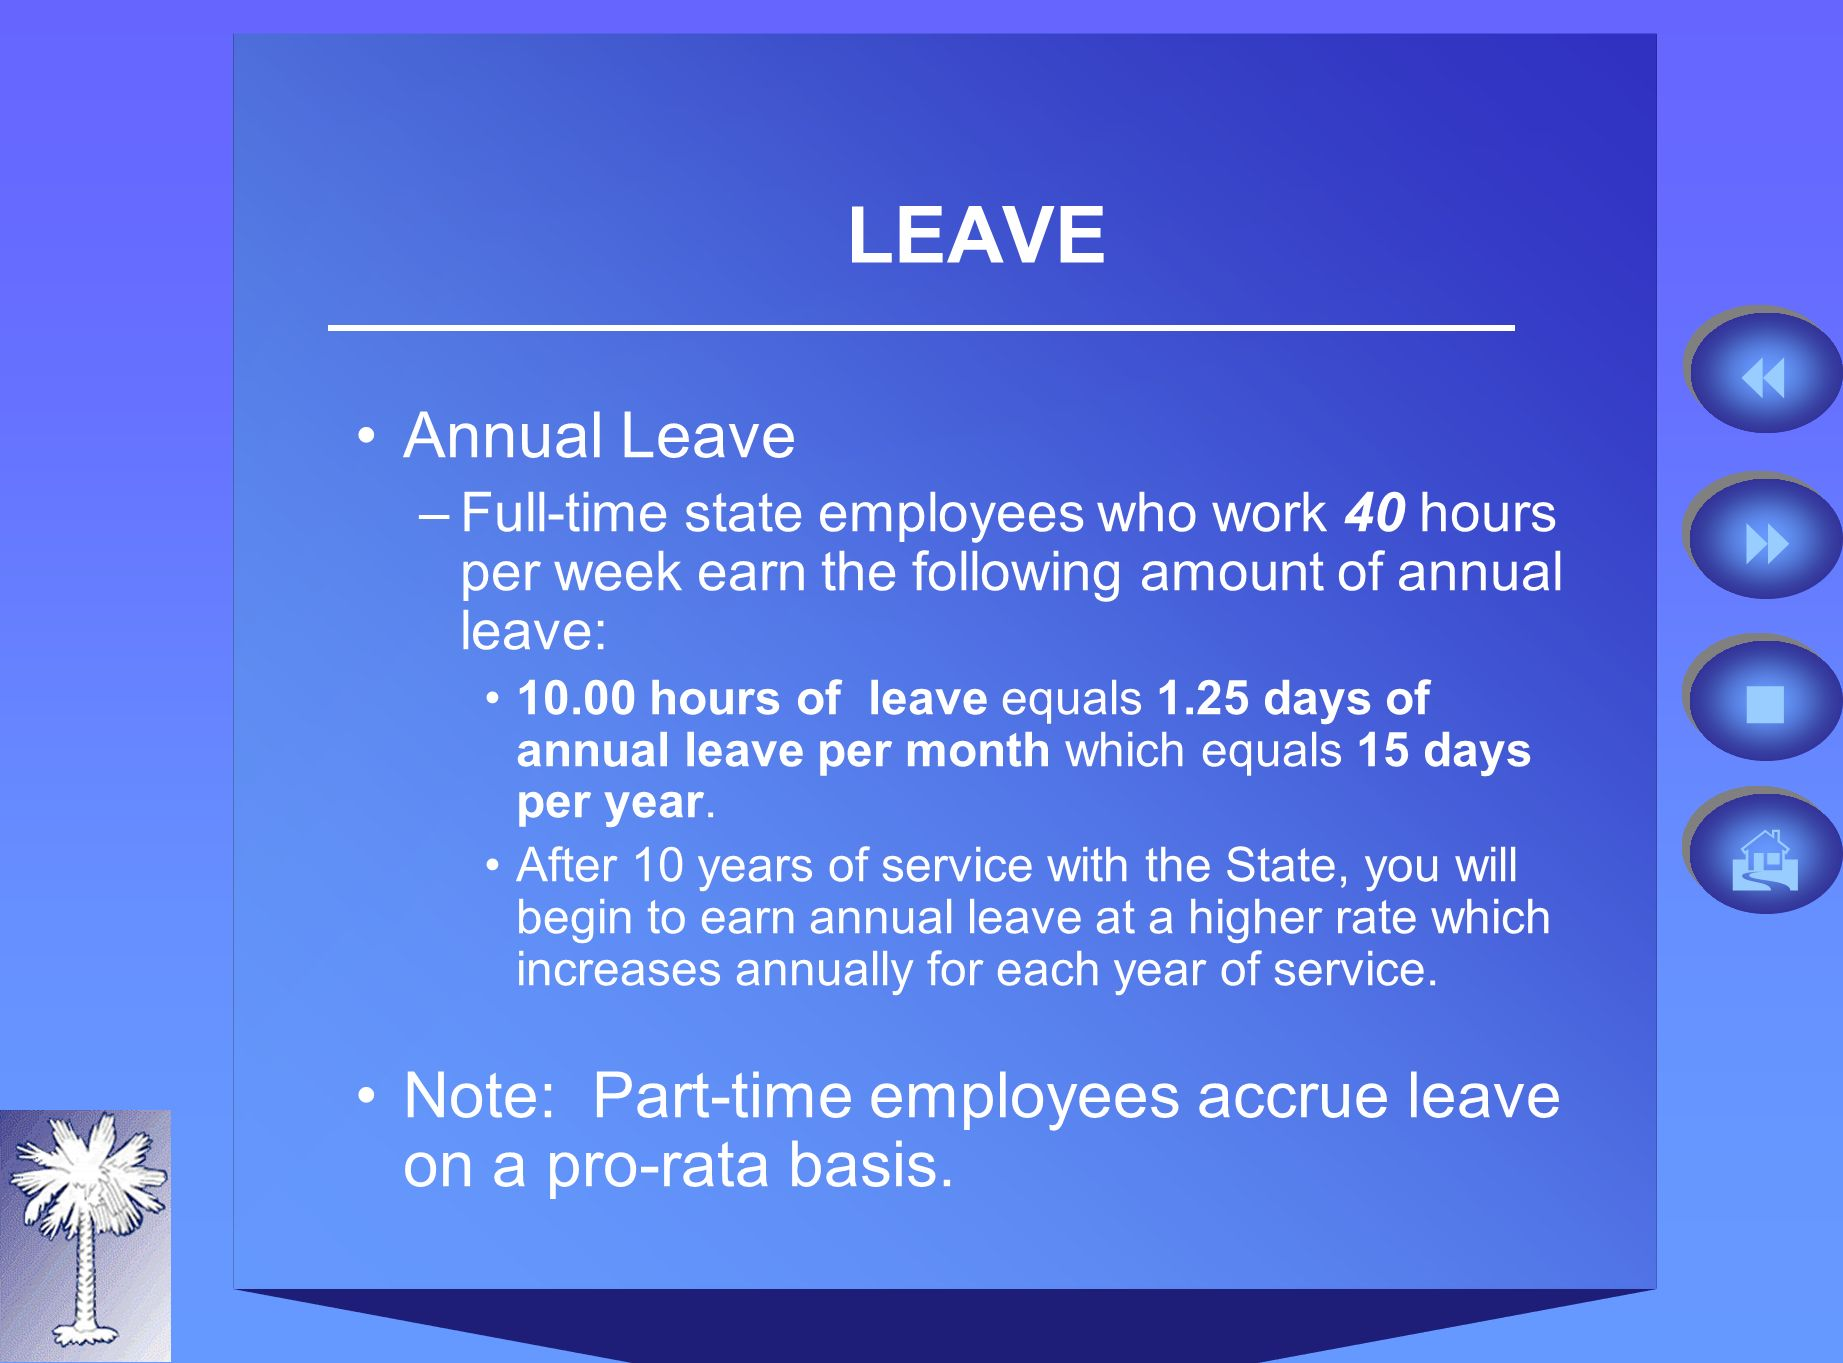 LEAVE Annual Leave –Full-time state employees who work 40 hours per week earn the following amount of annual leave: hours of leave equals 1.25 days of annual leave per month which equals 15 days per year.